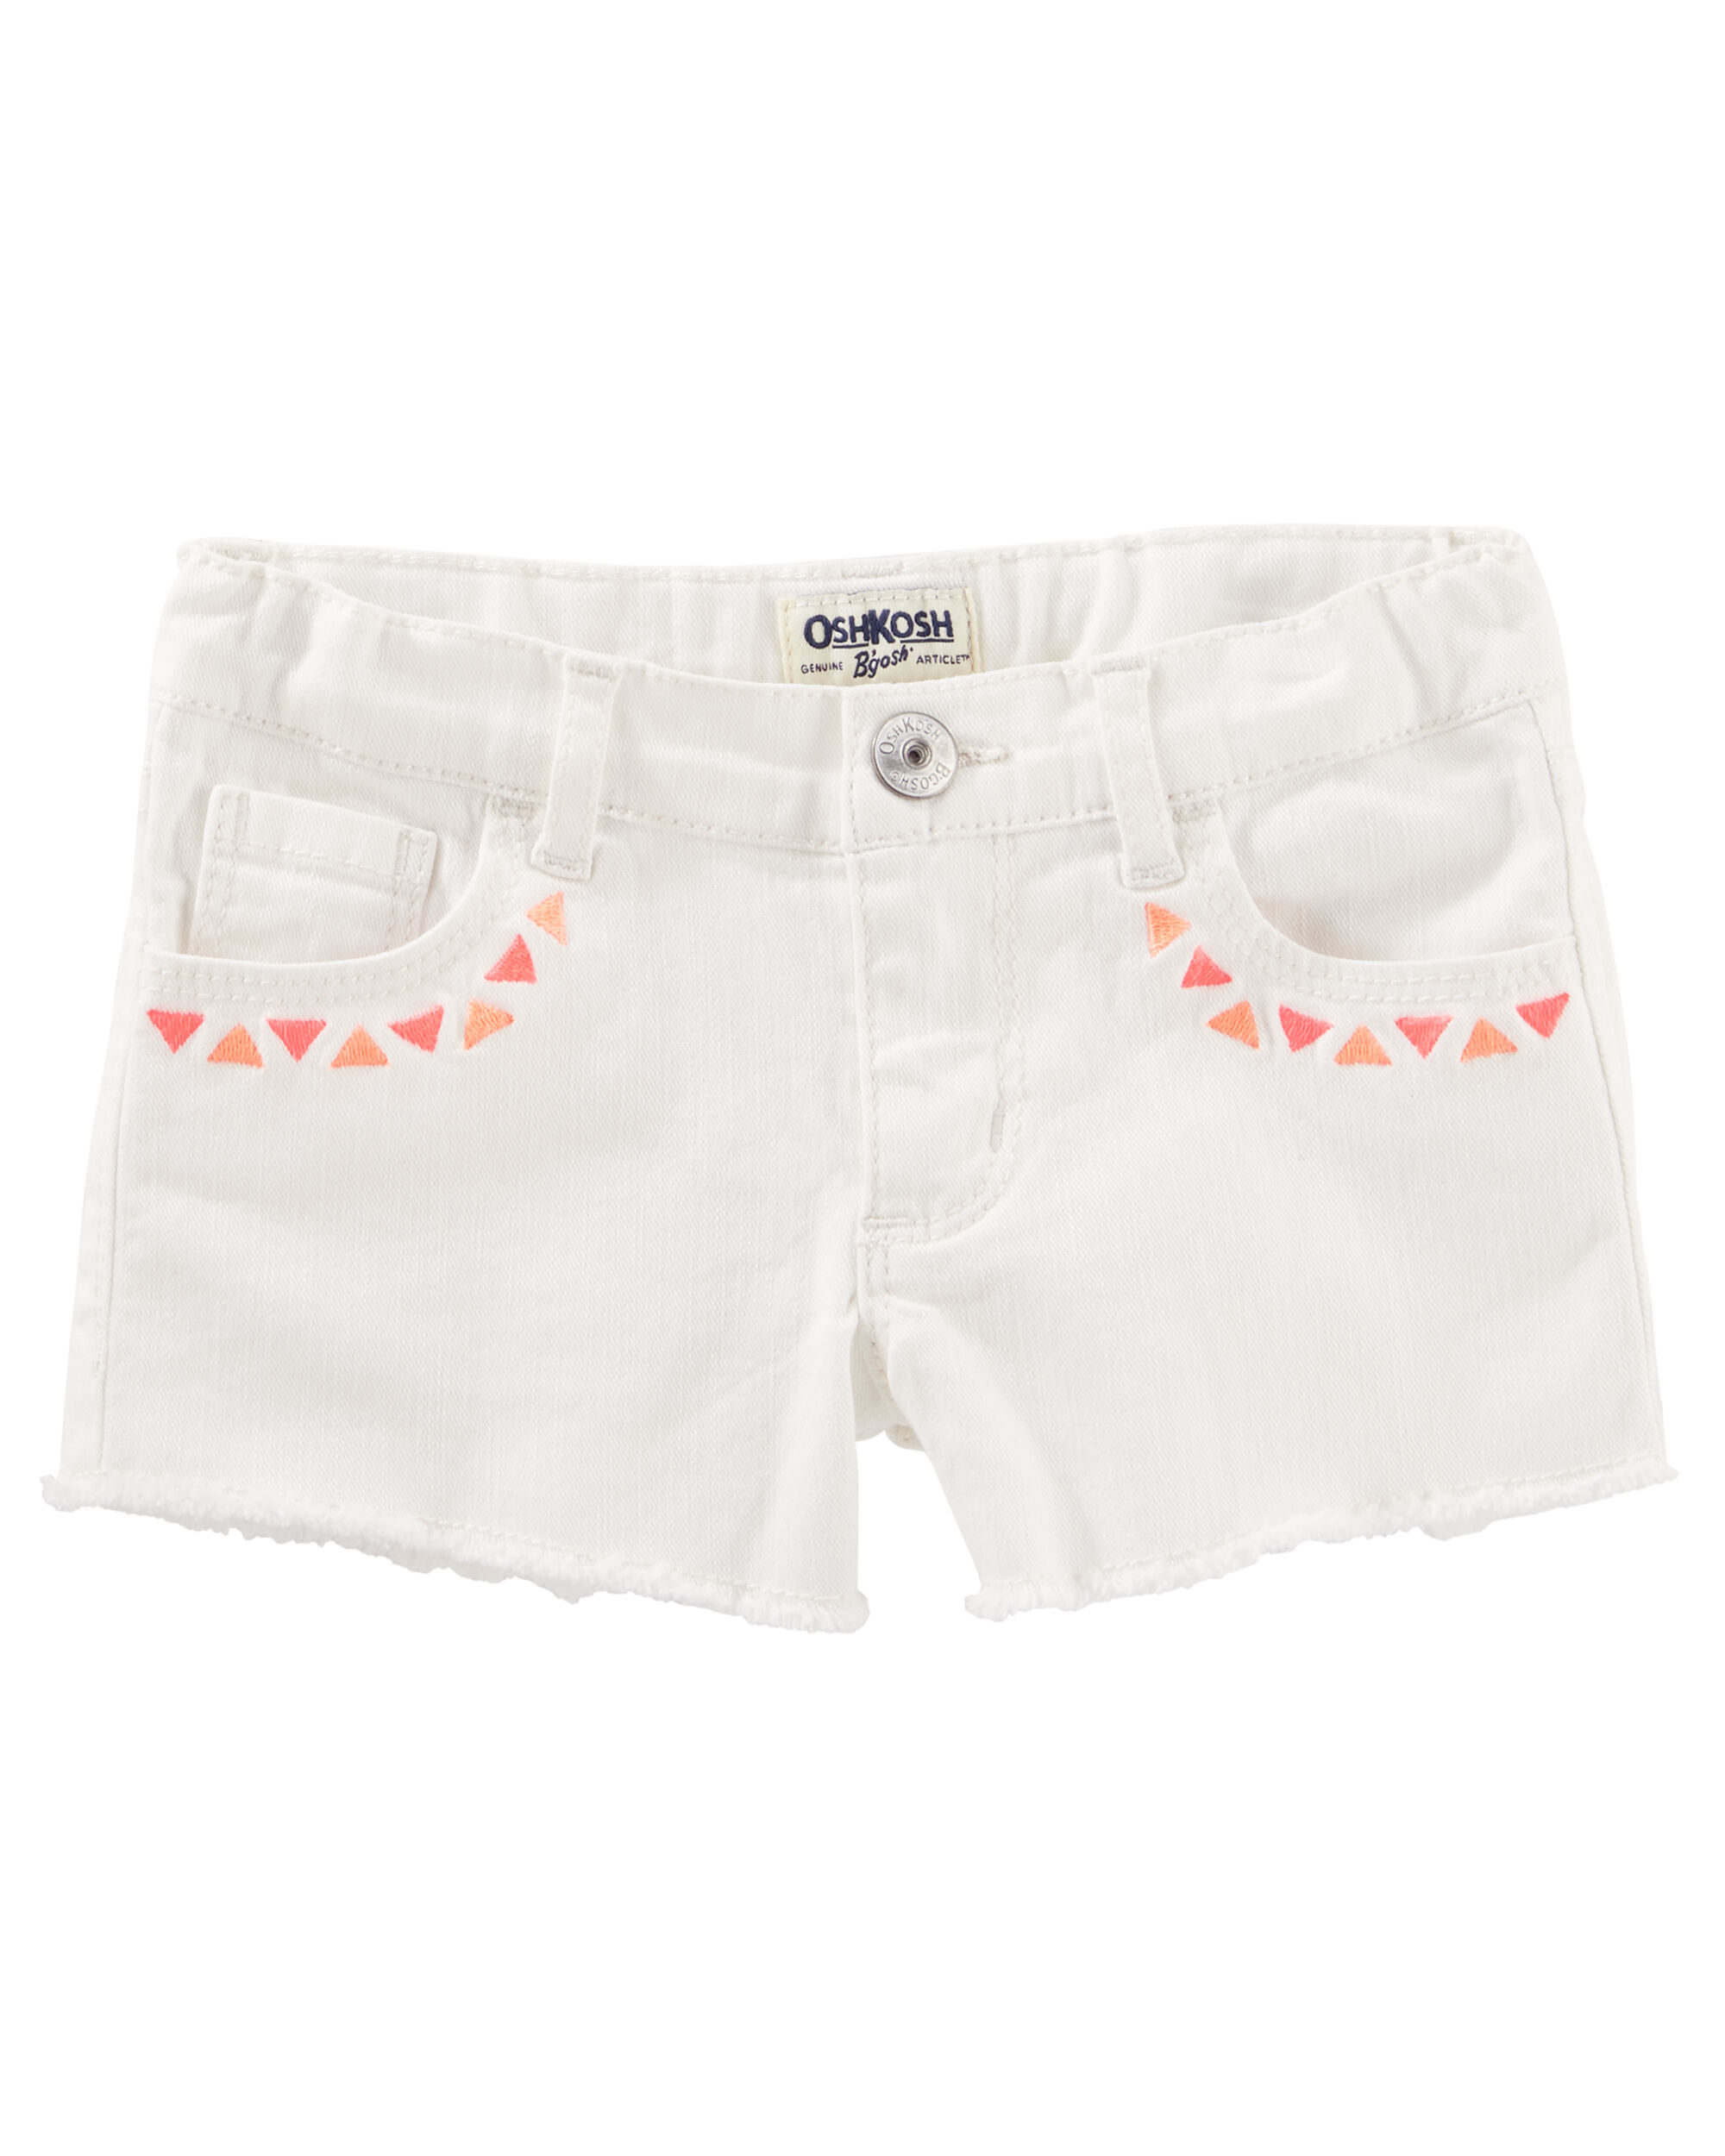 Embroidered Twill Shorts